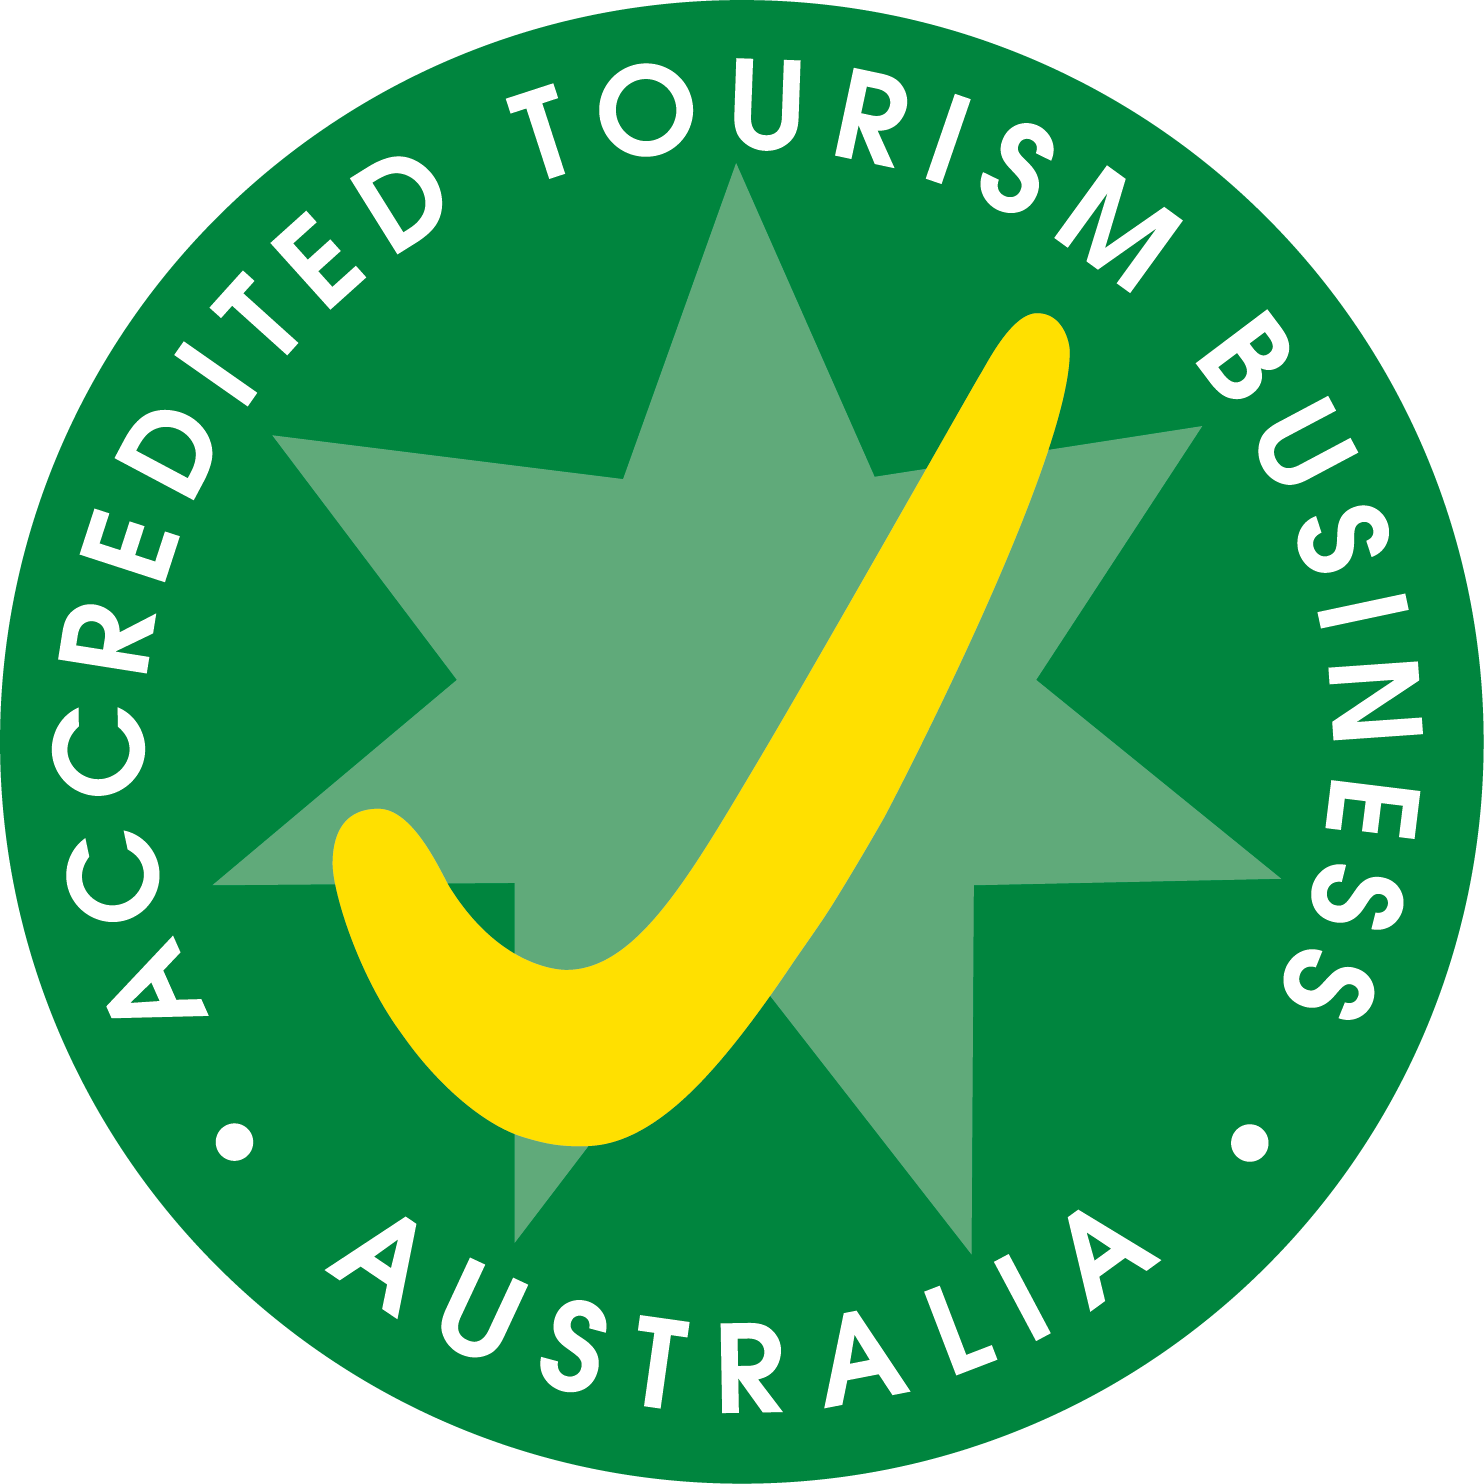 Accredited Tourism Business Australia.